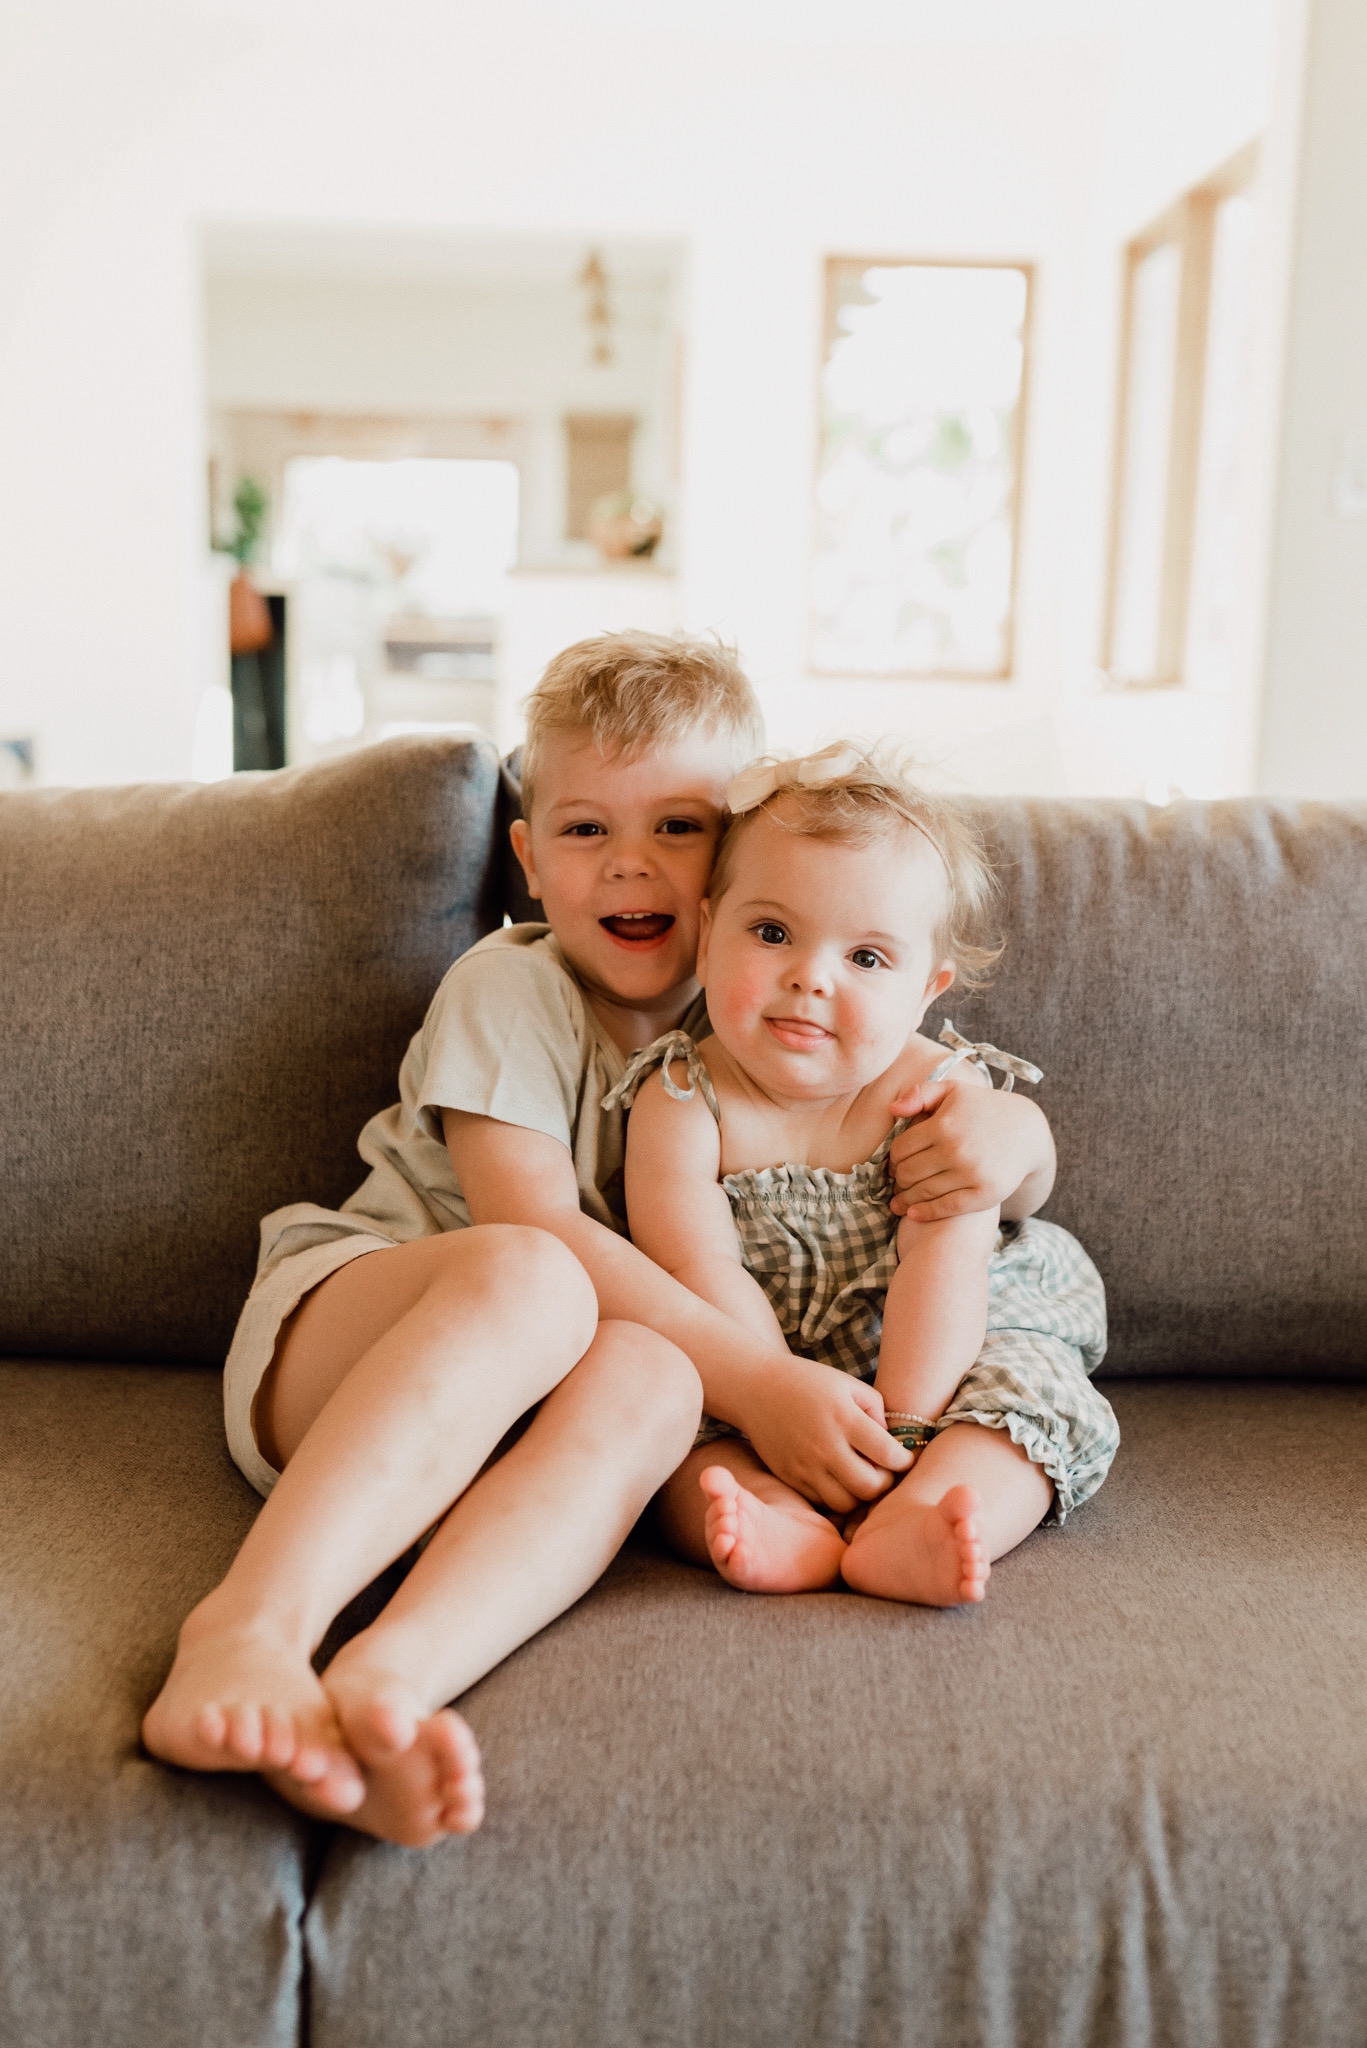 BLOGGING TIPS: 5 THINGS TO DO WHEN YOUR WORDPRESS WEBSITE GETS HACKED featured by top US life and style San Diego blog, Navy Grace | WordPress Hacking by popular San Diego blog, Navy Grace: image of a little boy and girl cuddling on a grey couch.